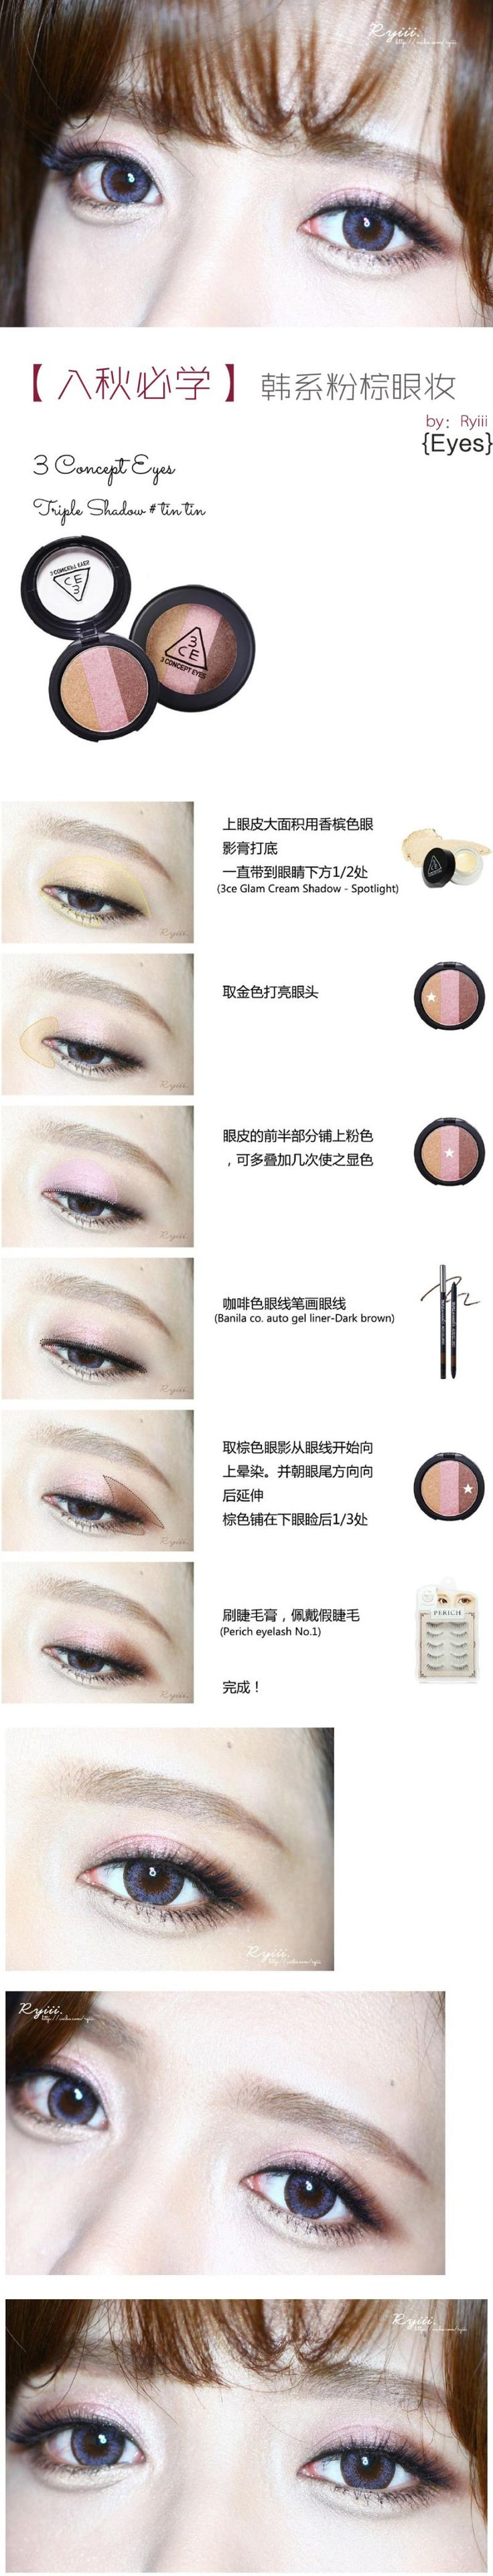 Korean 3CE eye makeup tutorial